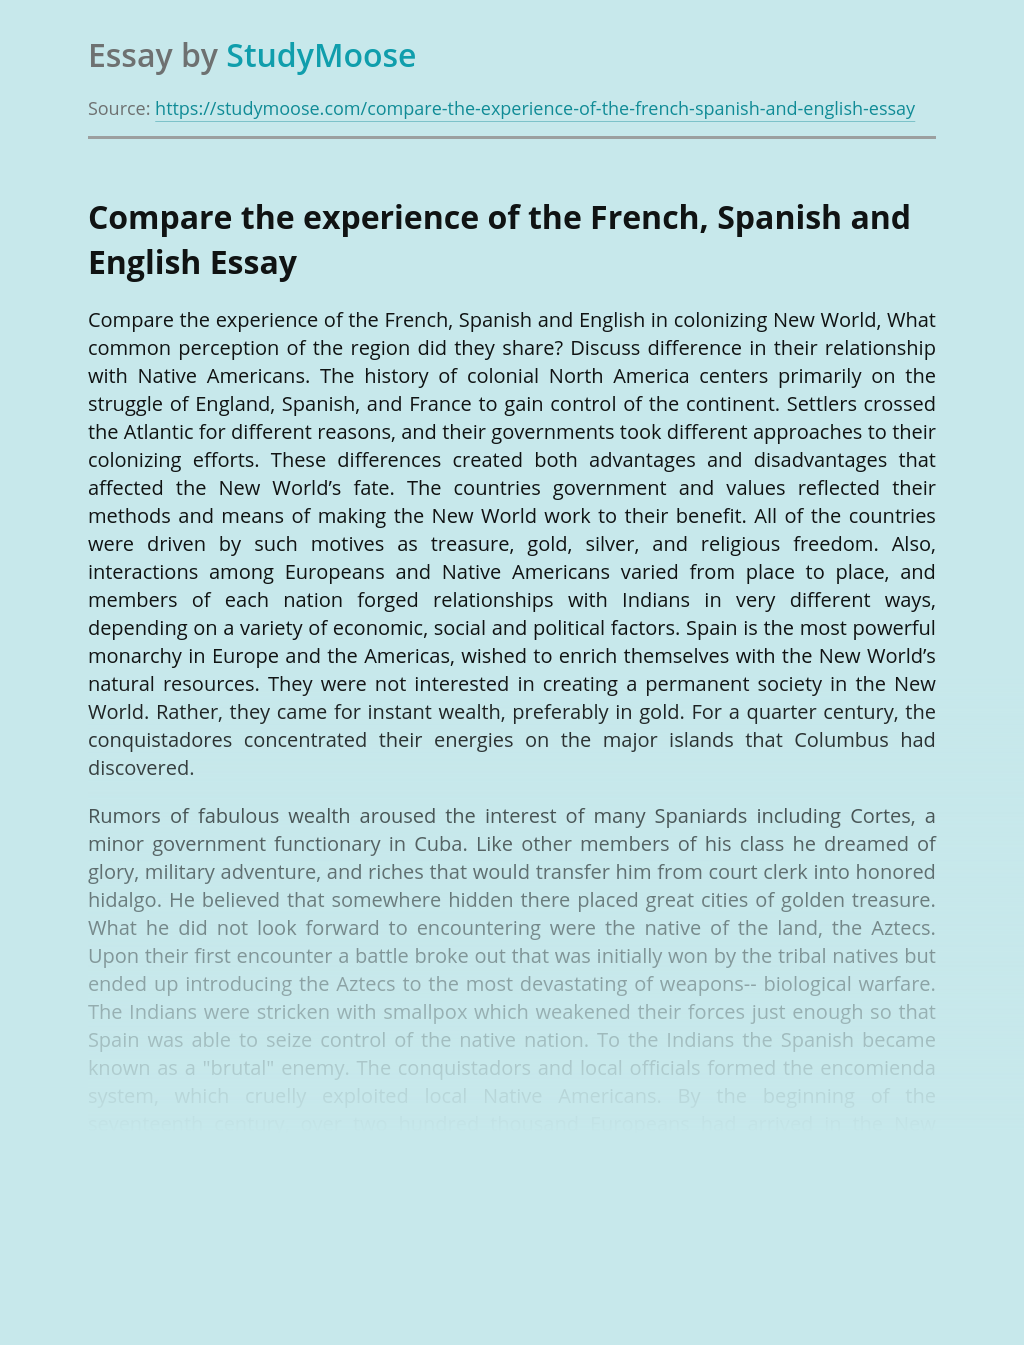 Compare the experience of the French, Spanish and English